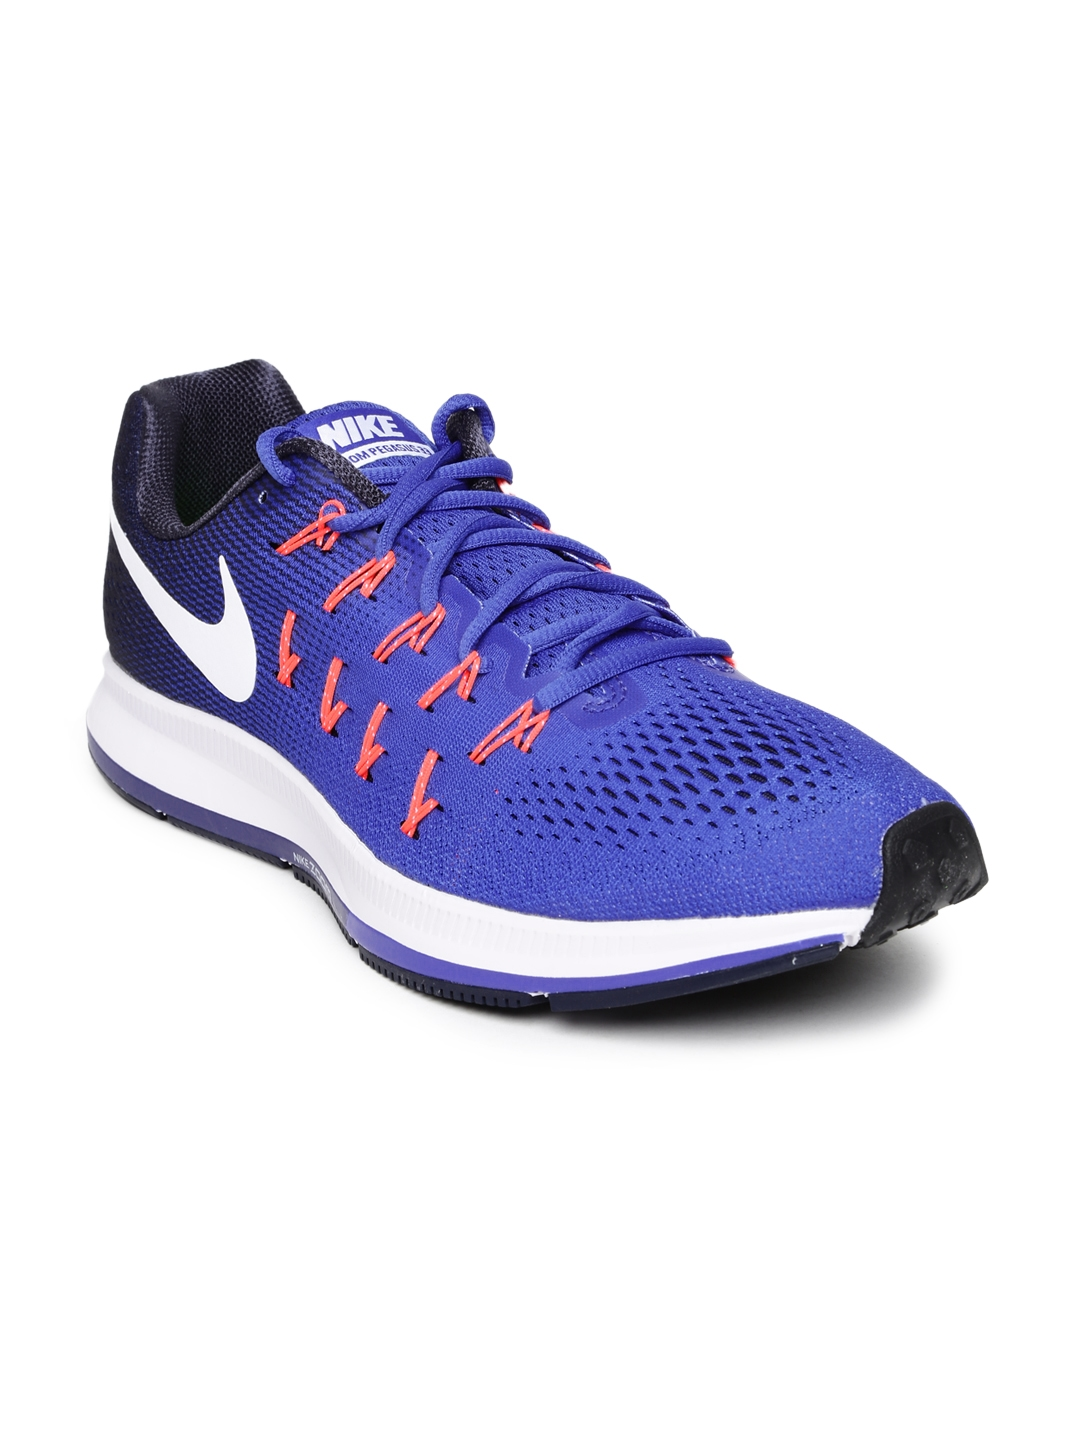 5b72f97459d7 Buy Nike Men Blue Air Zoom Pegasus 33 Running Shoes - Sports Shoes ...